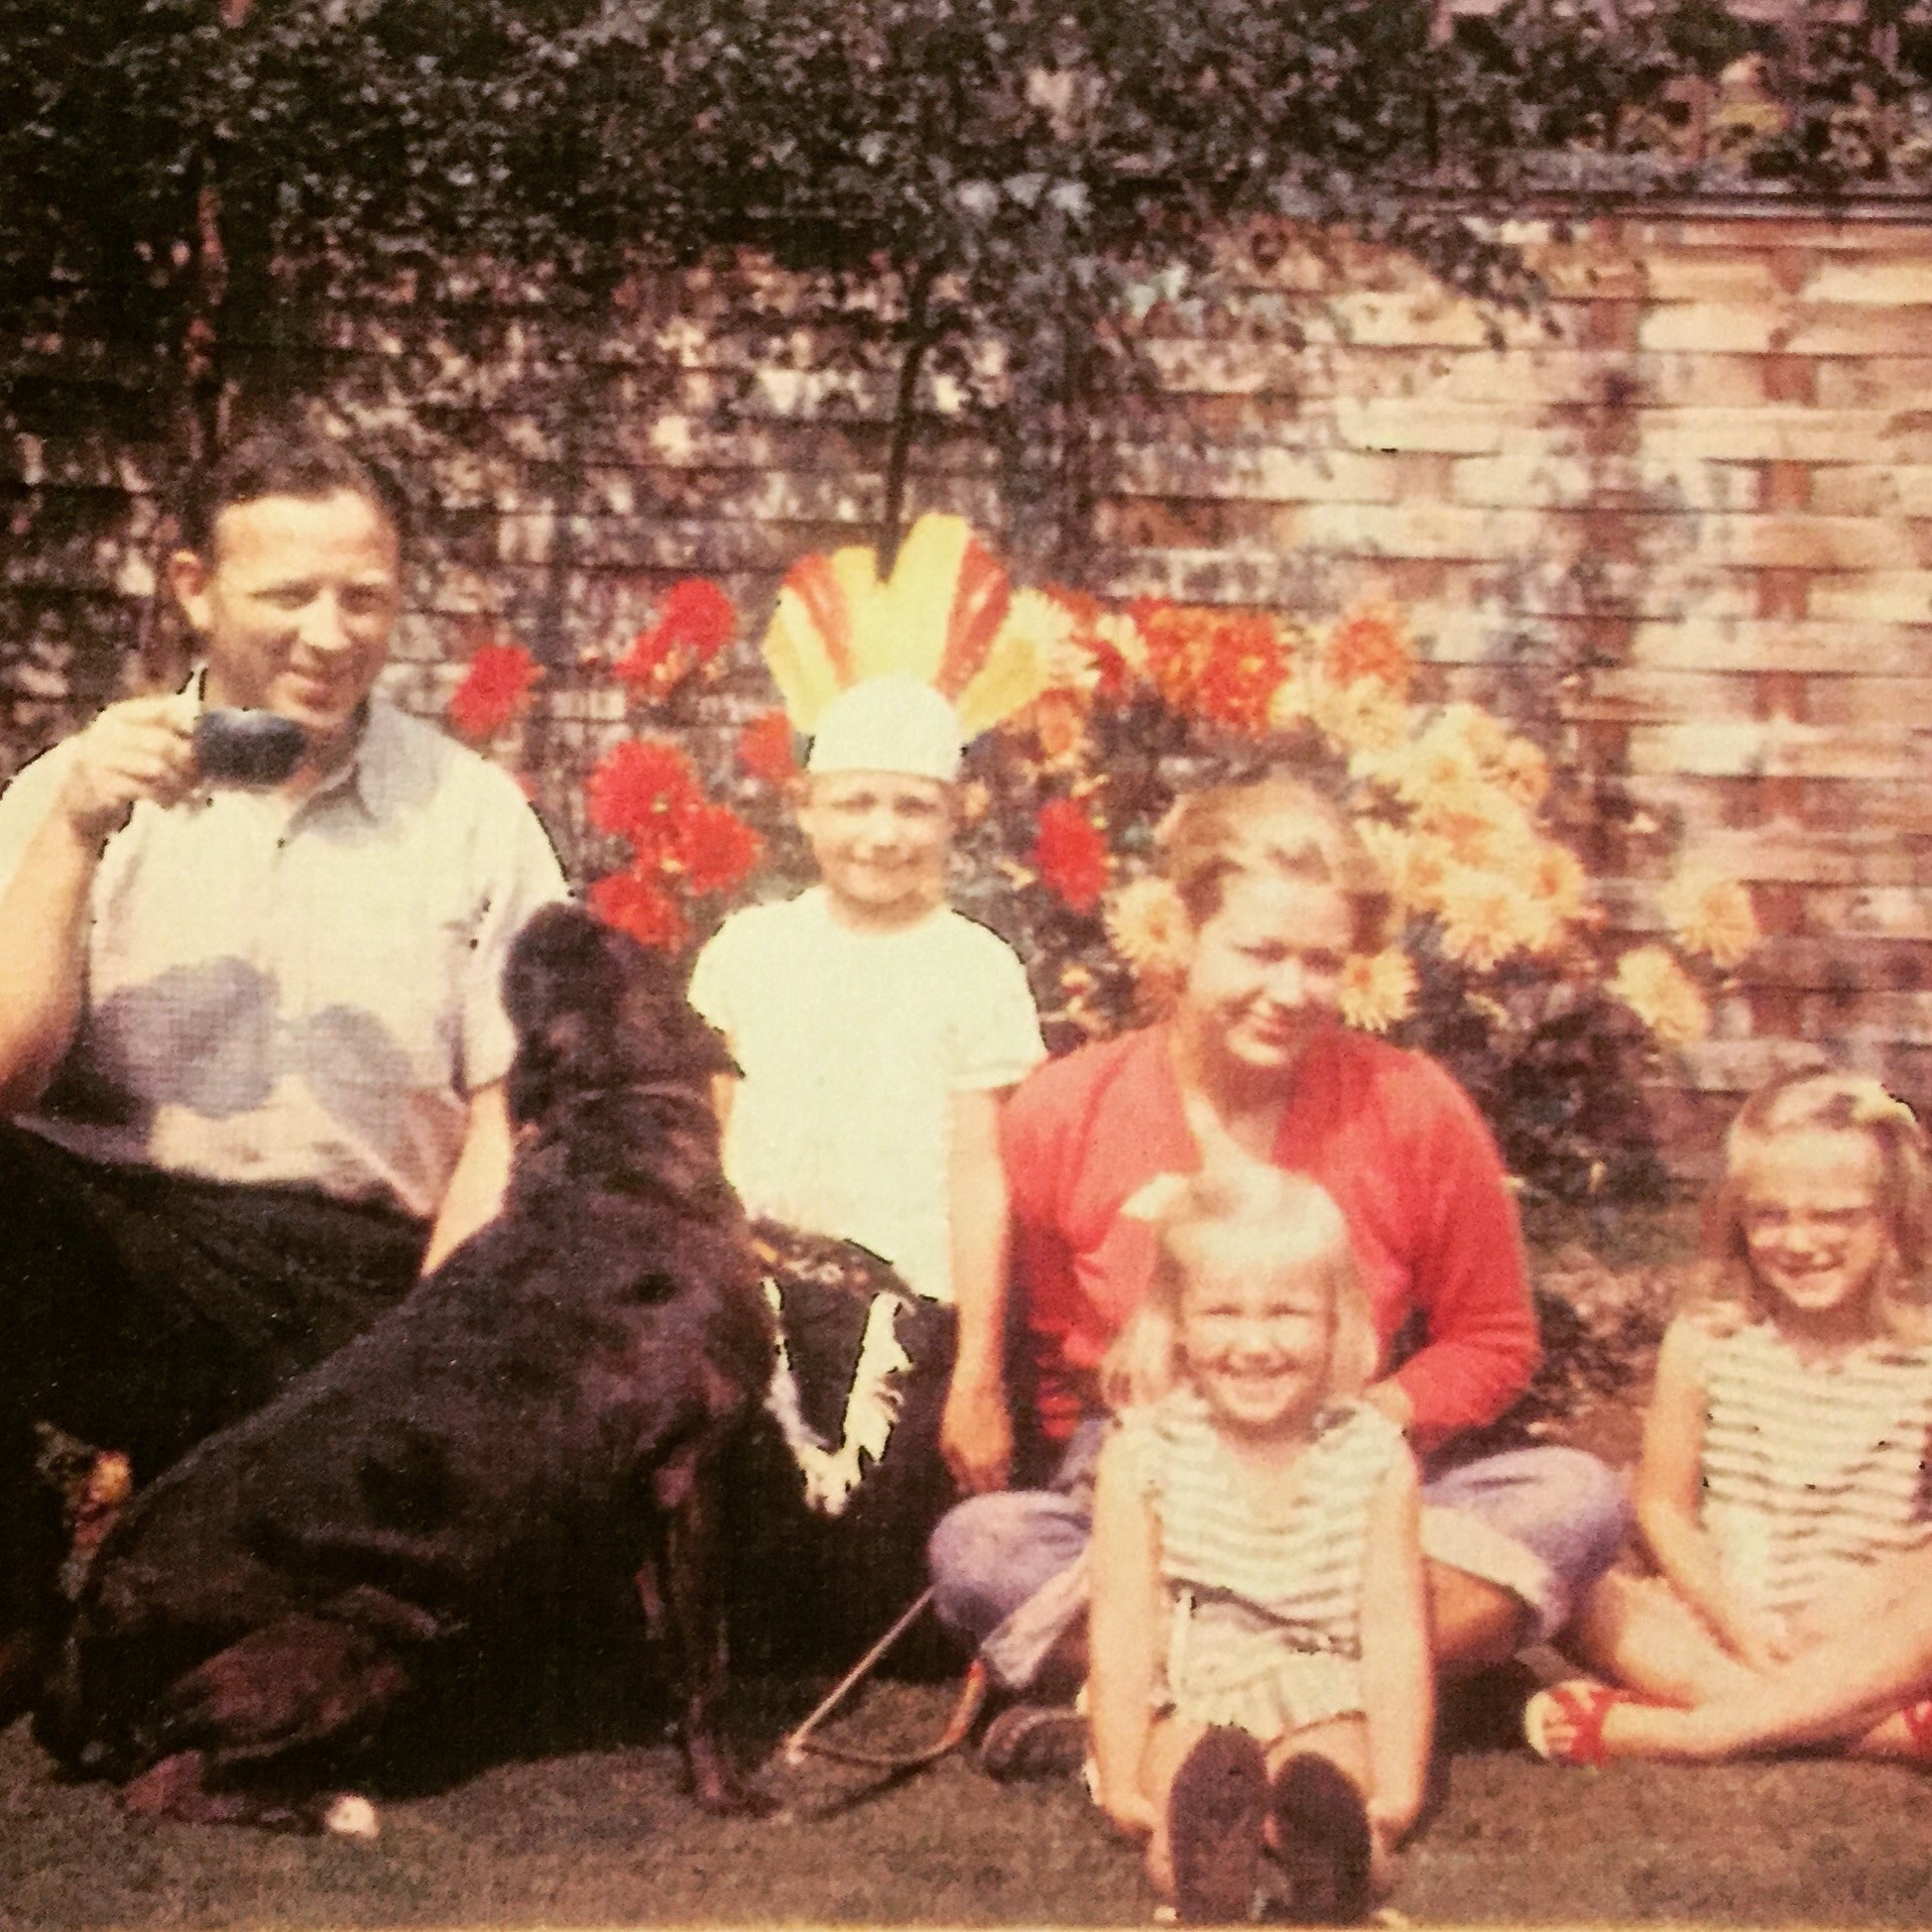 Family time 1964